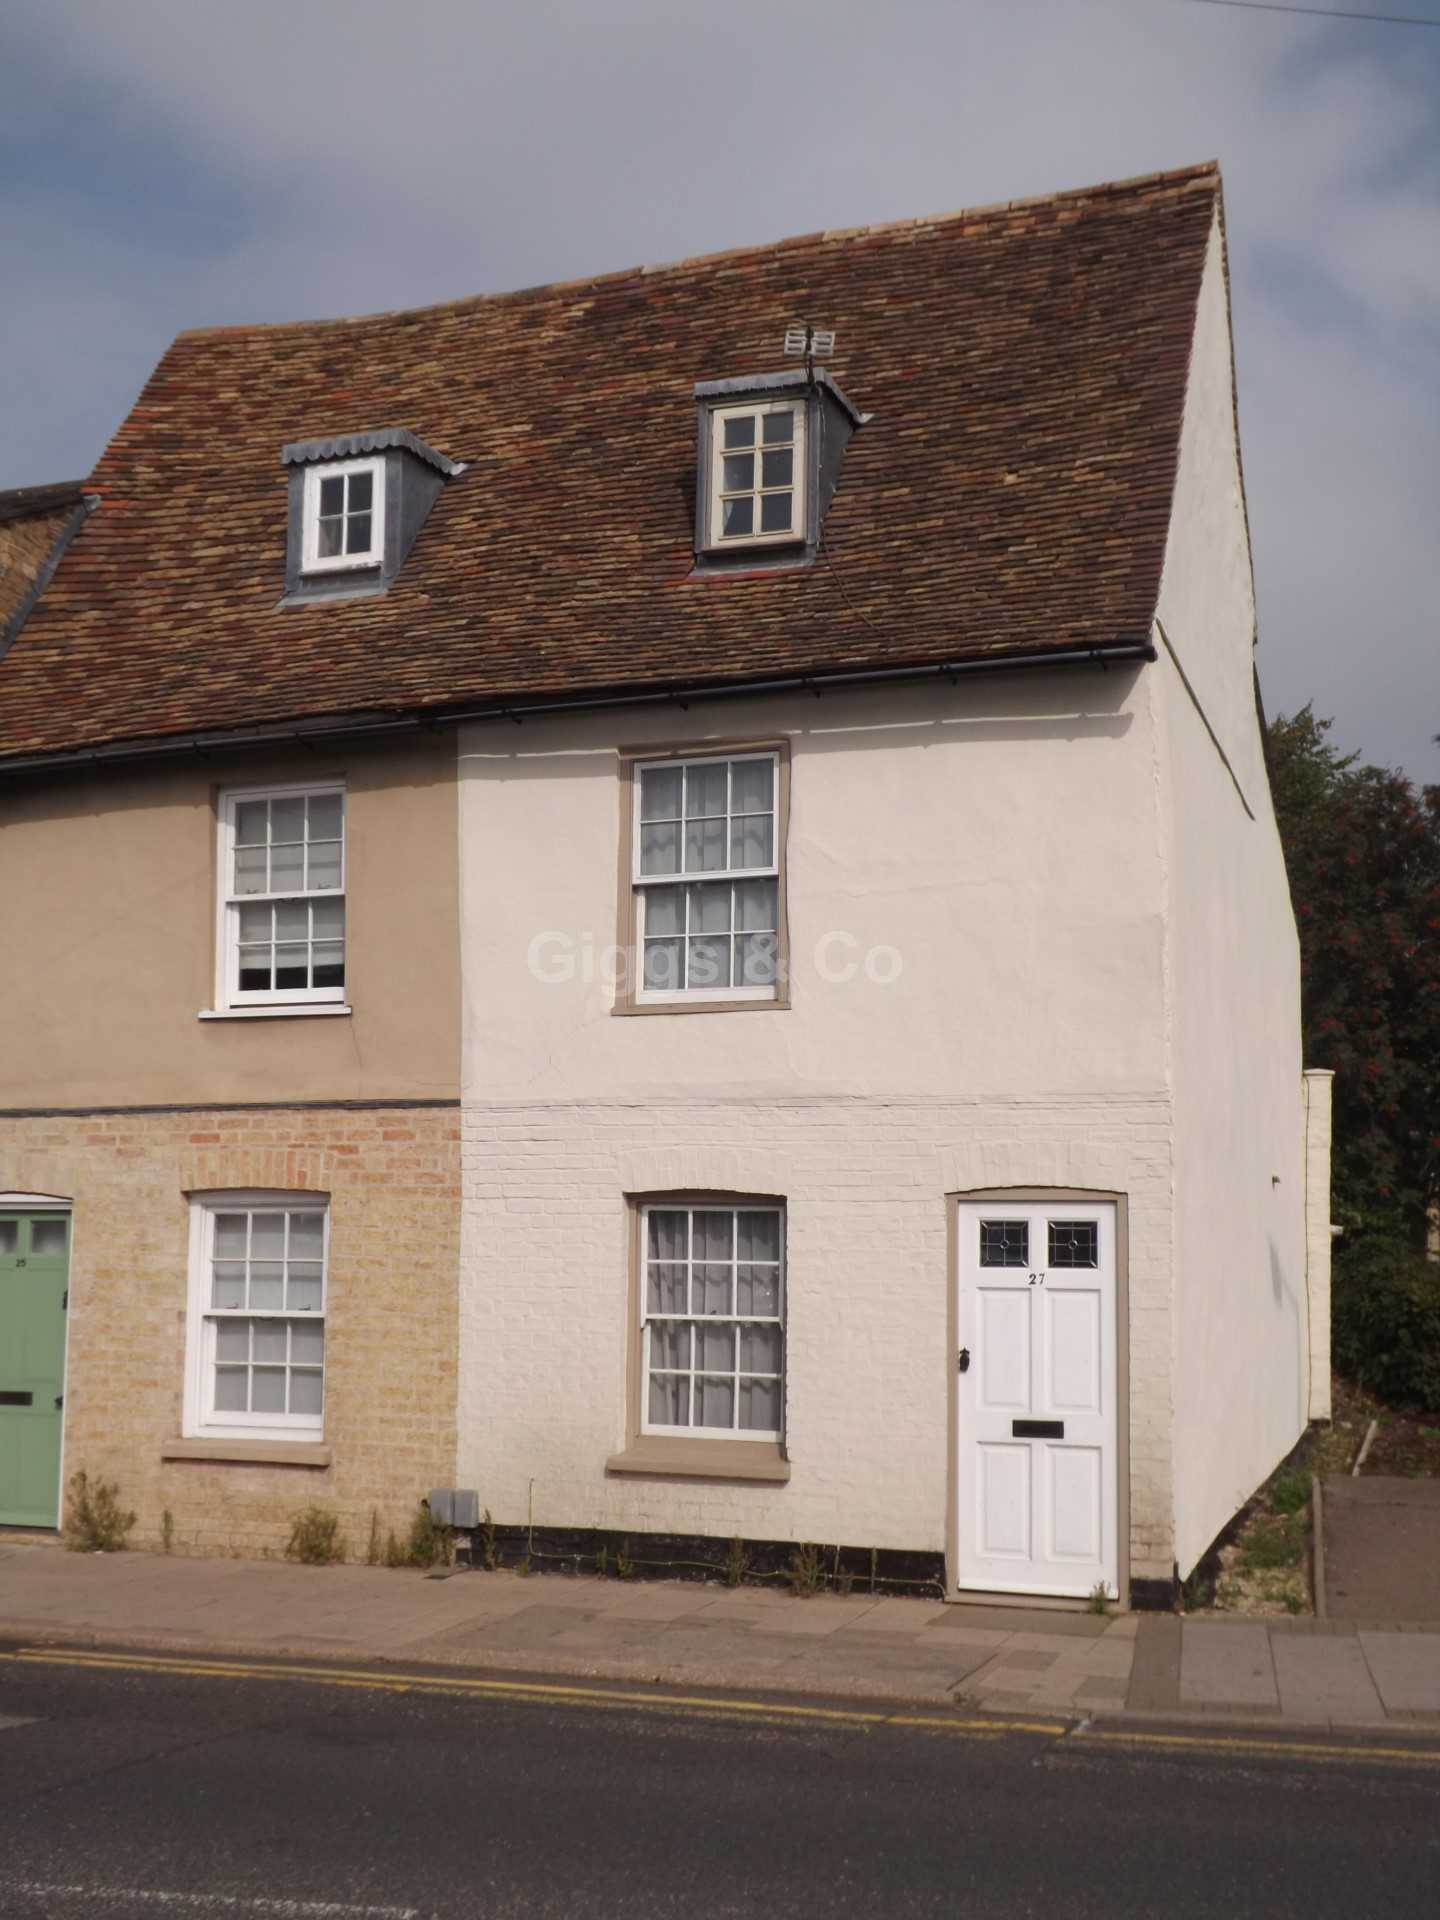 2 bed end-of-terrace-house to rent in Cambridge Street, St Neots 0